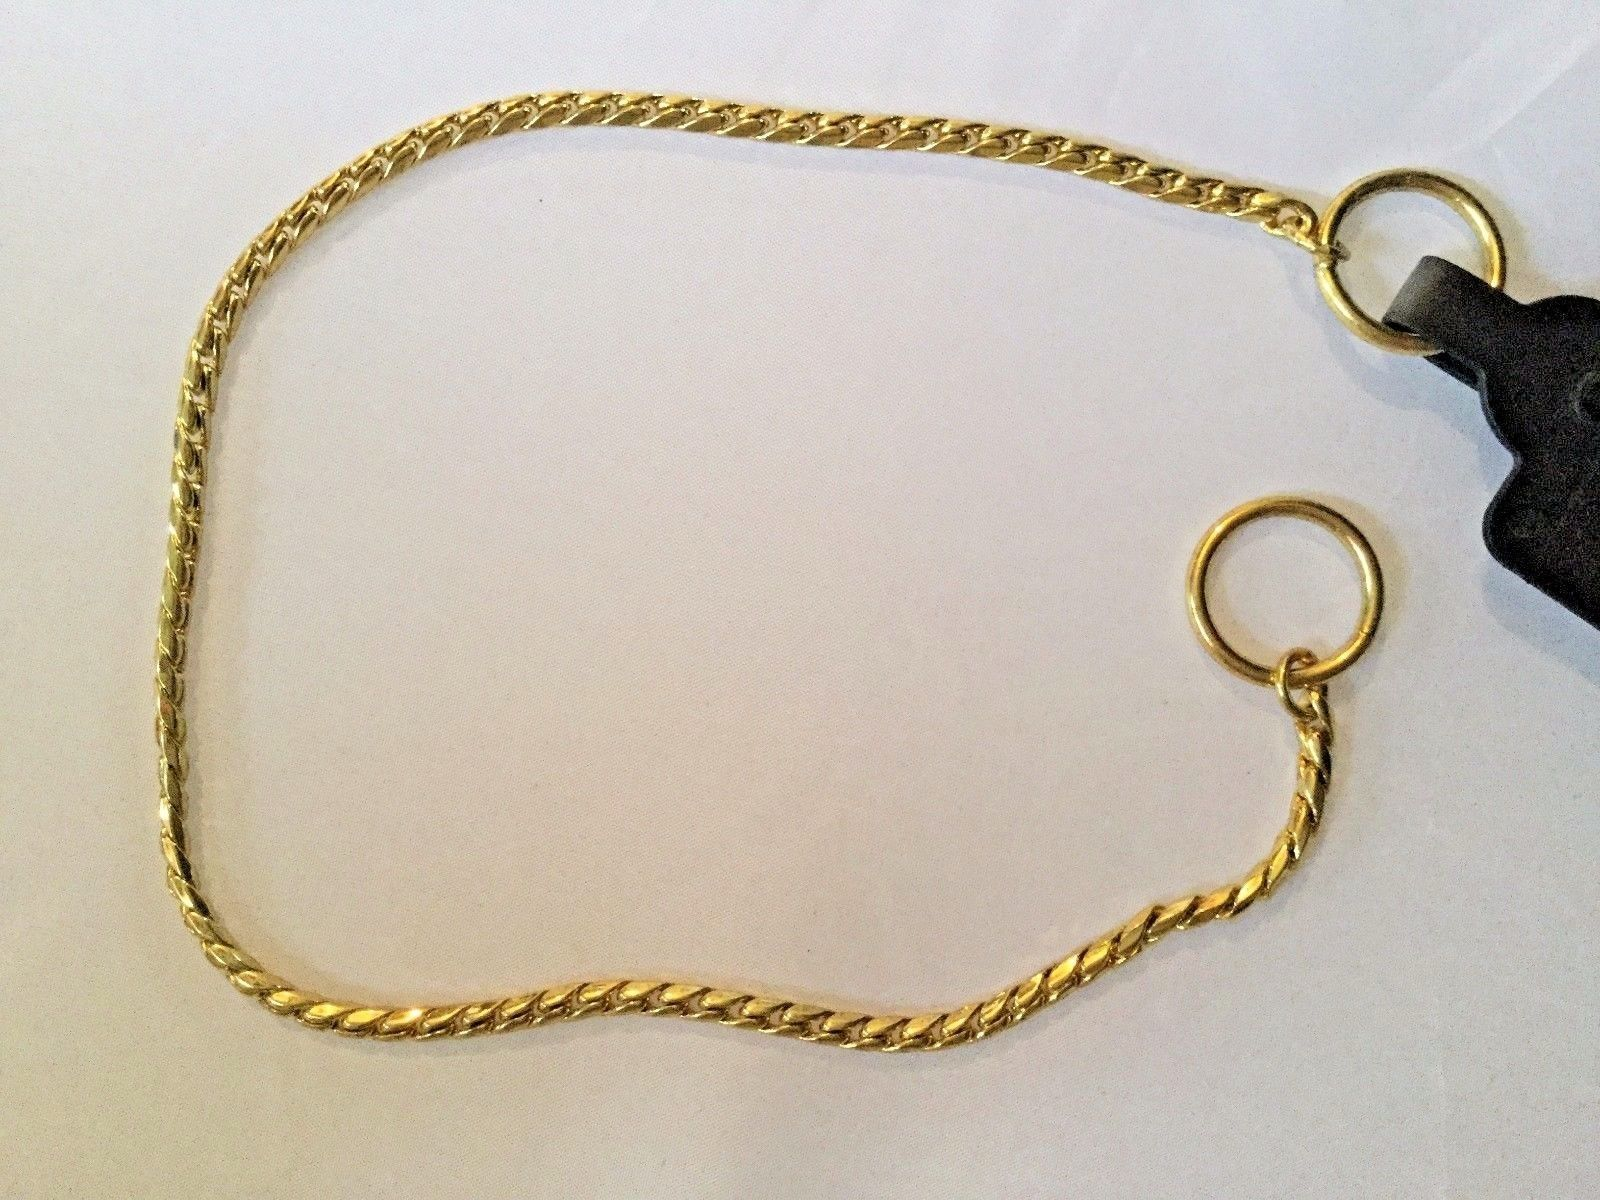 Gold Snake Chain Show Choke Collar Dog Fine Weight 3 Lengths NEW Hexagon Pup